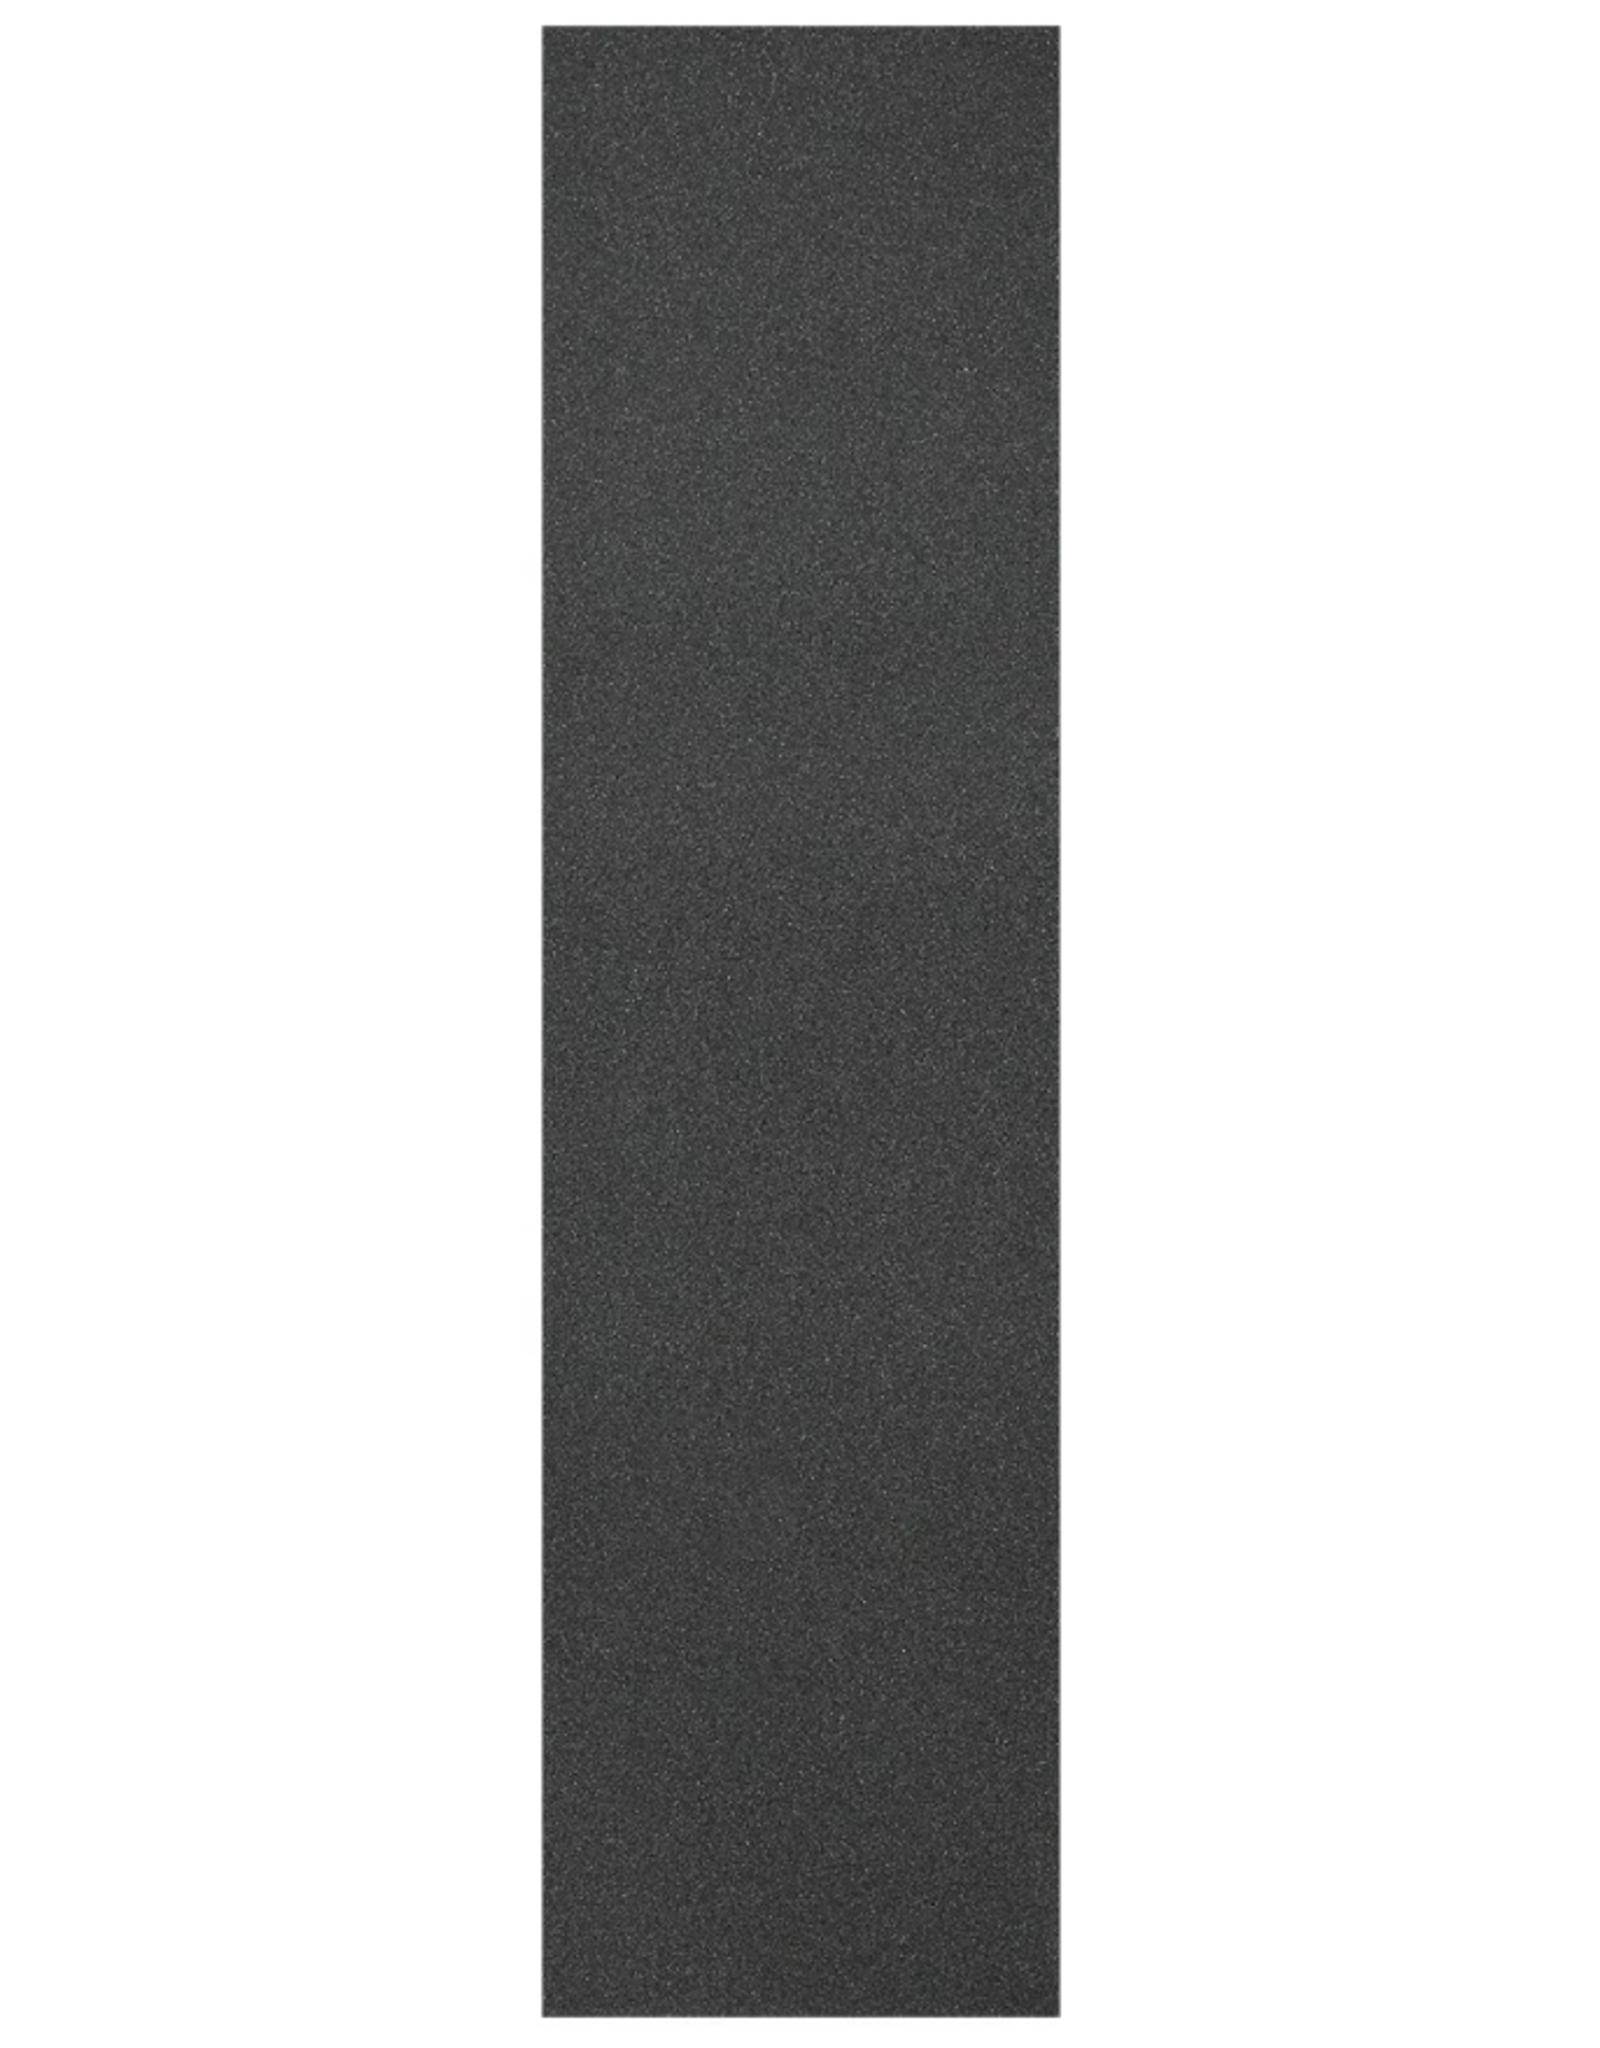 JESSUP BLACK GRIP TAPE SHEET (9X33)